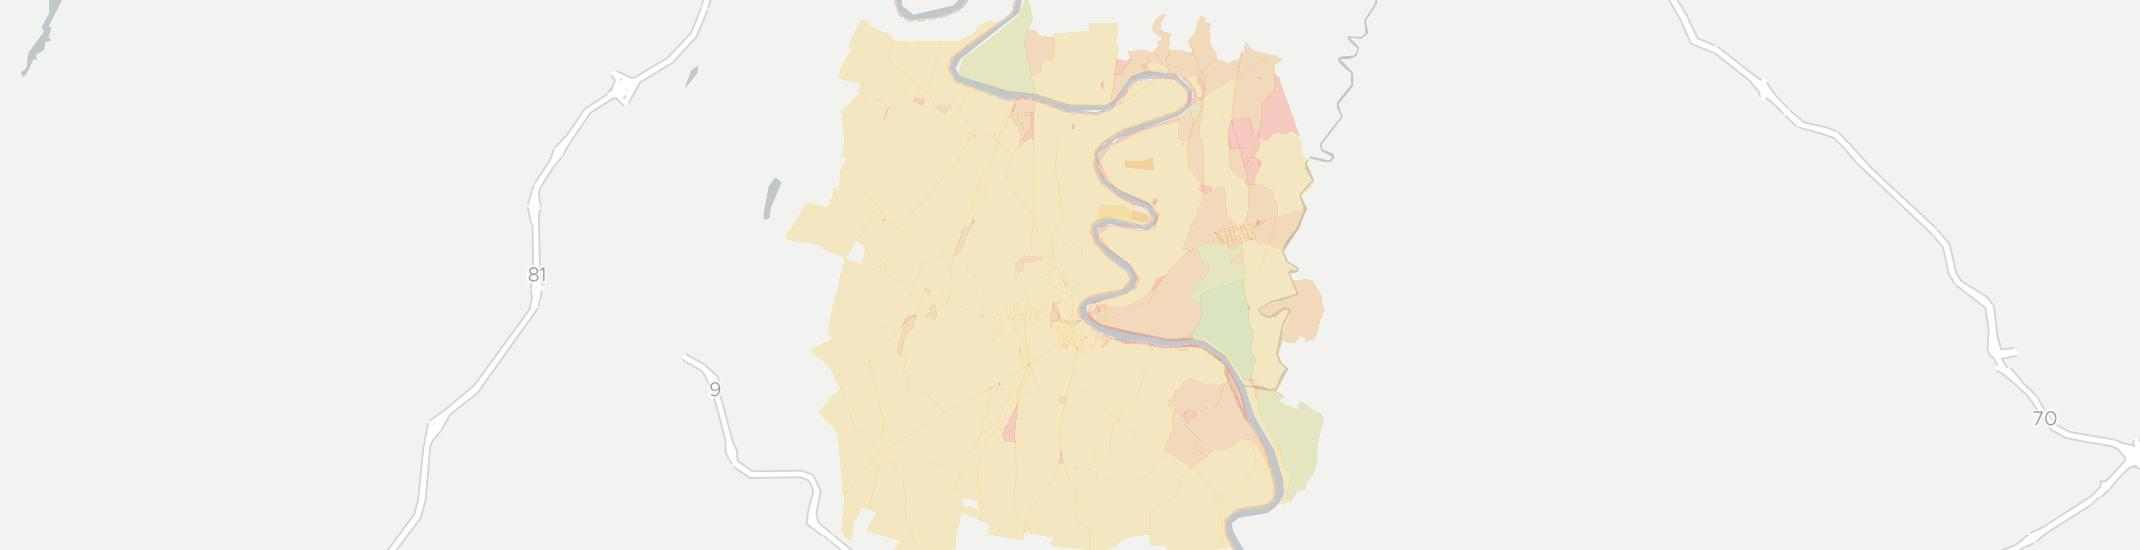 Shepherdstown Internet Competition Map. Click for interactive map.